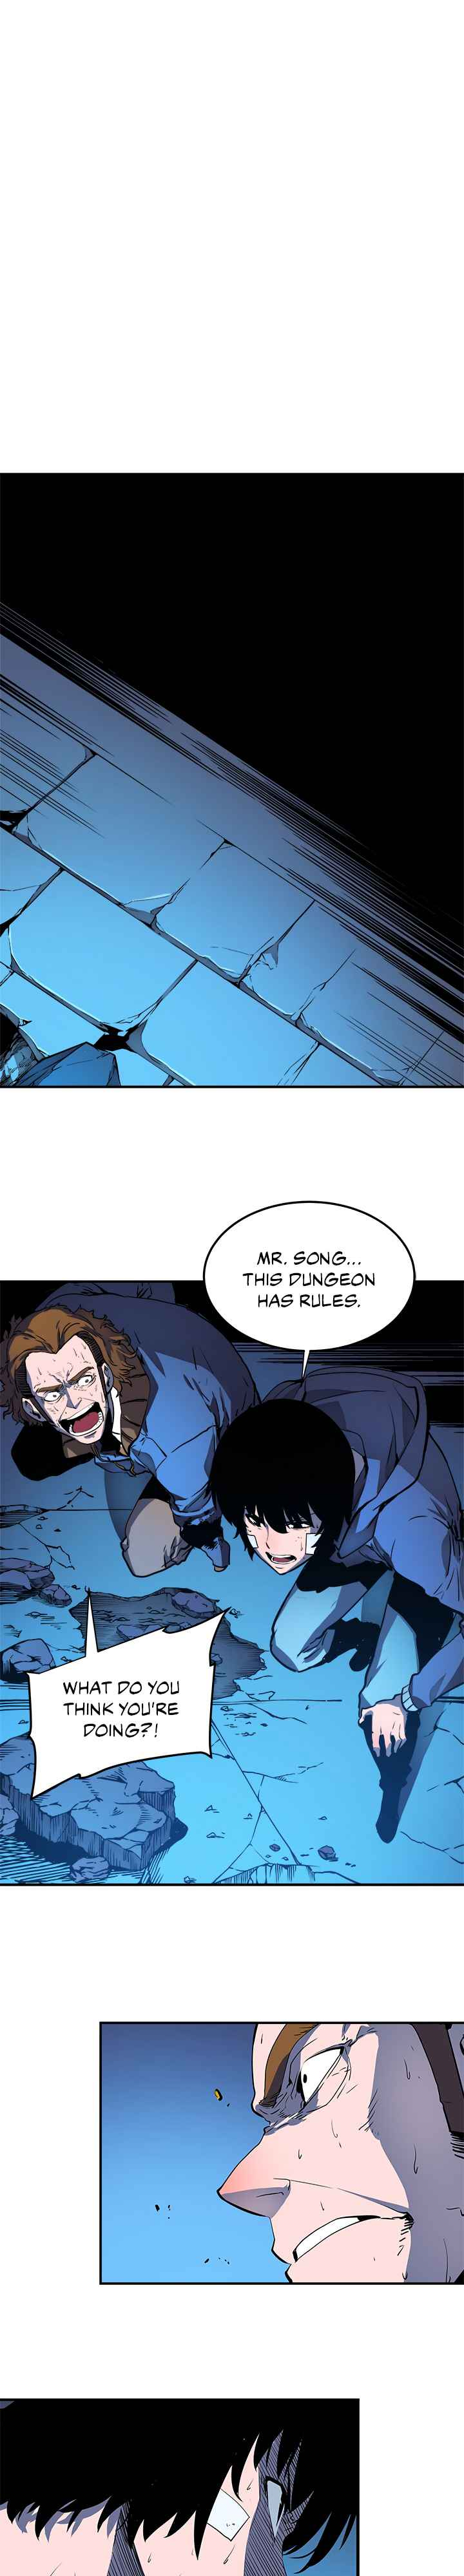 Solo Leveling Chapter 6 Page 1